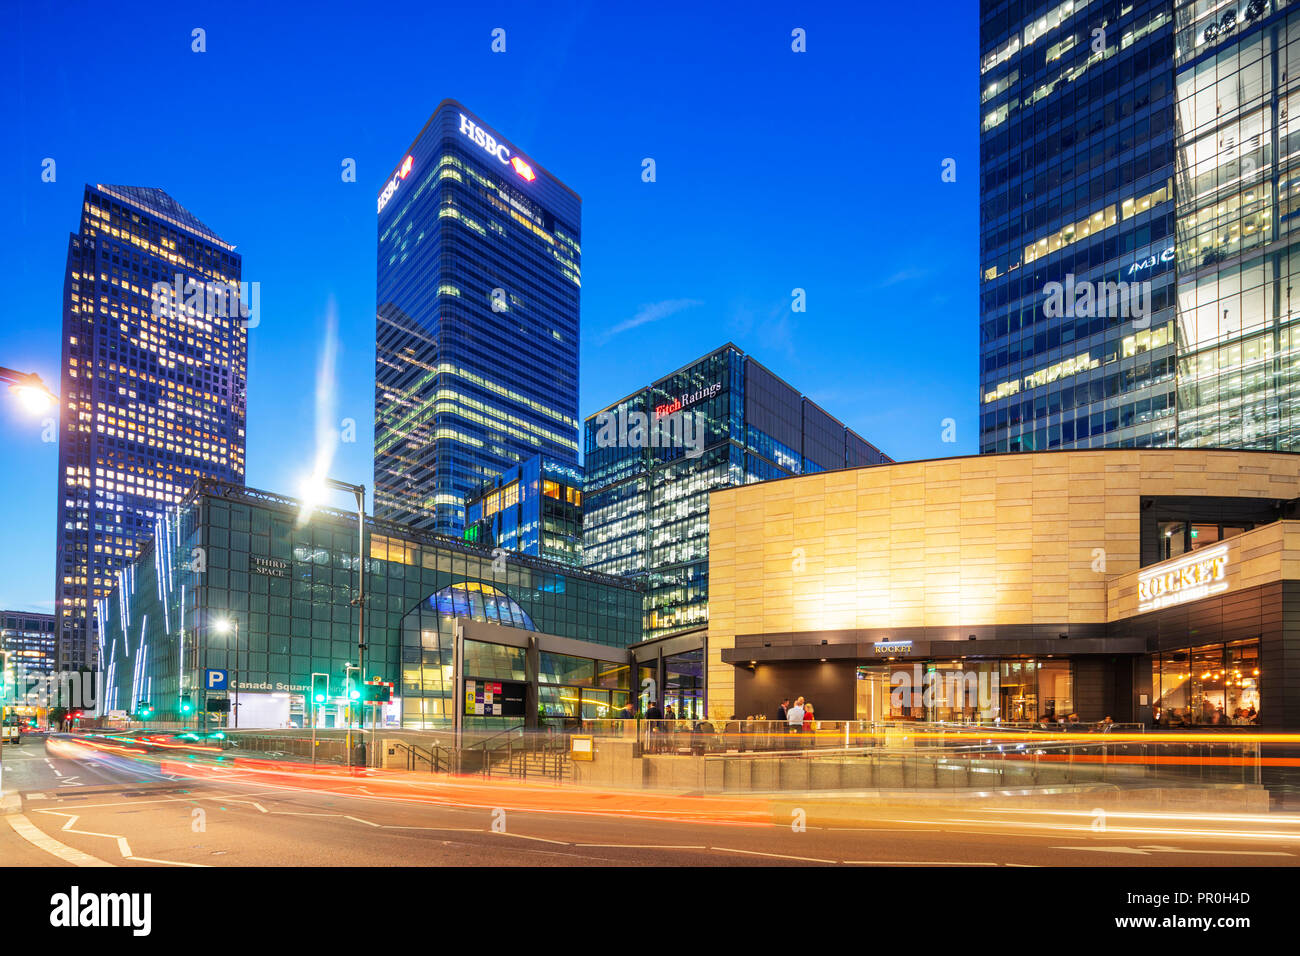 Canary Wharf, One Canada Square, Docklands, London, England, United Kingdom, Europe - Stock Image